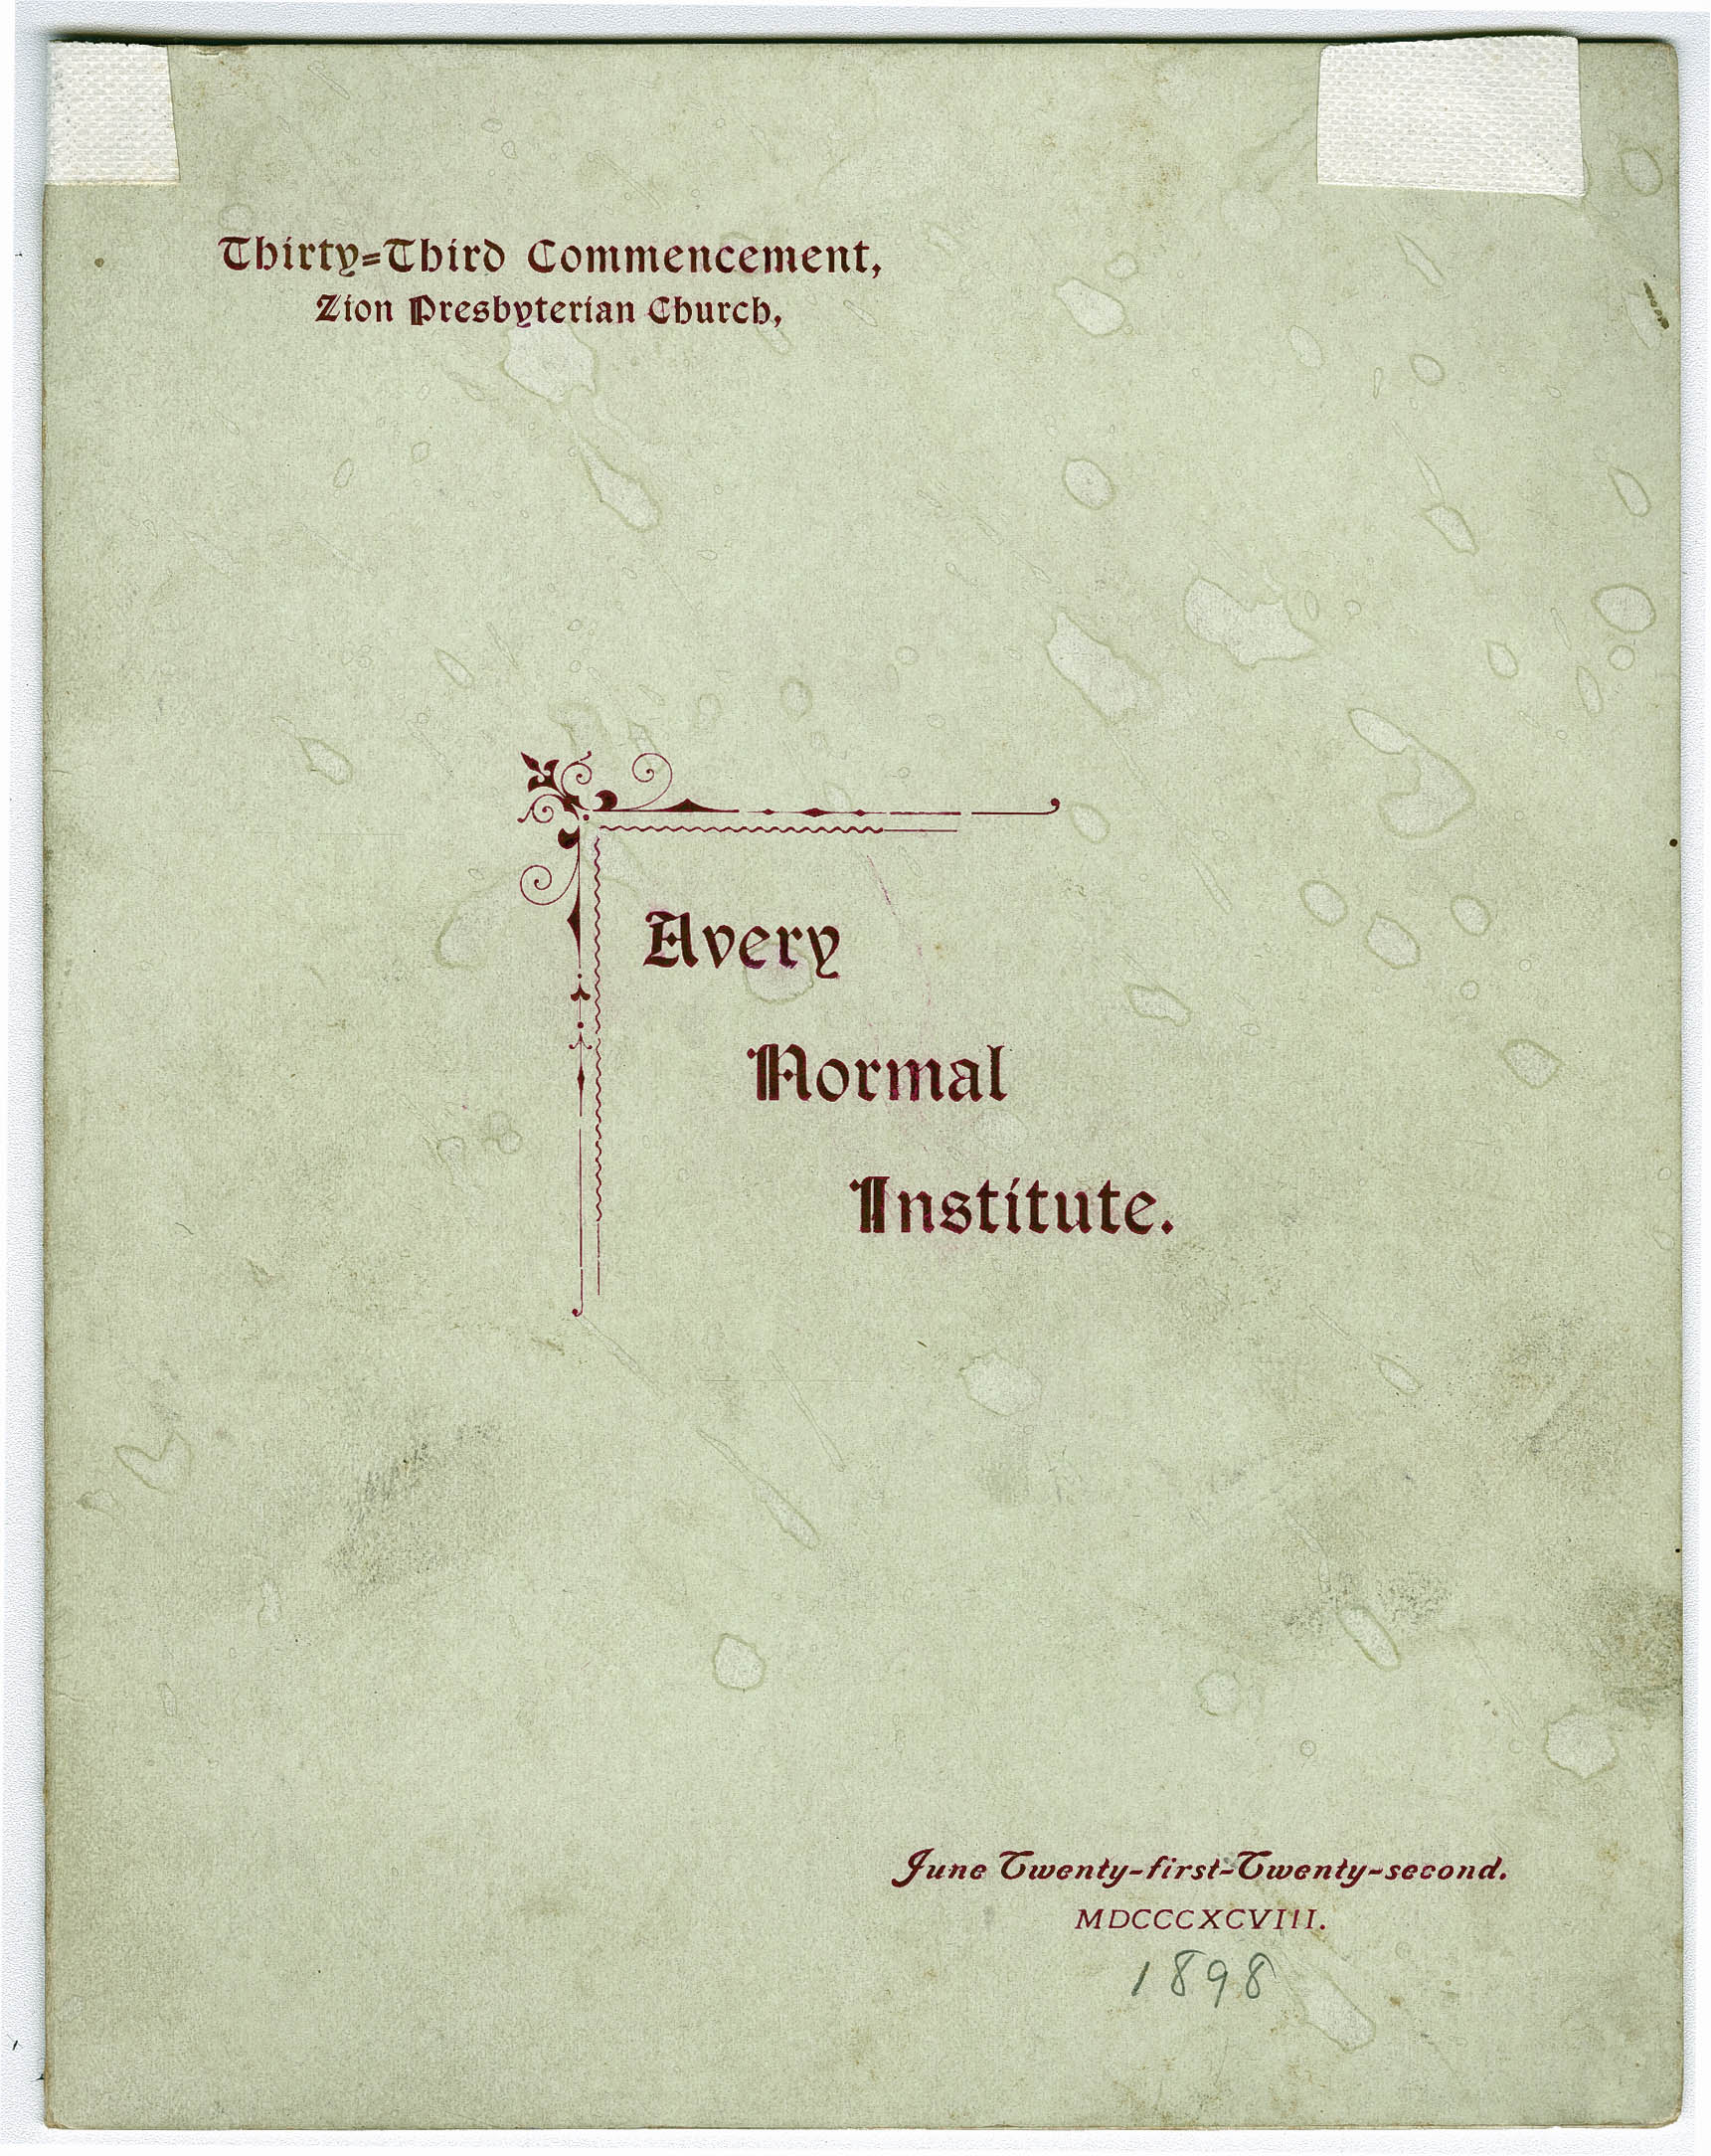 Avery Normal Institute Commencement Program for Zion Presbyterian Church Ceremony